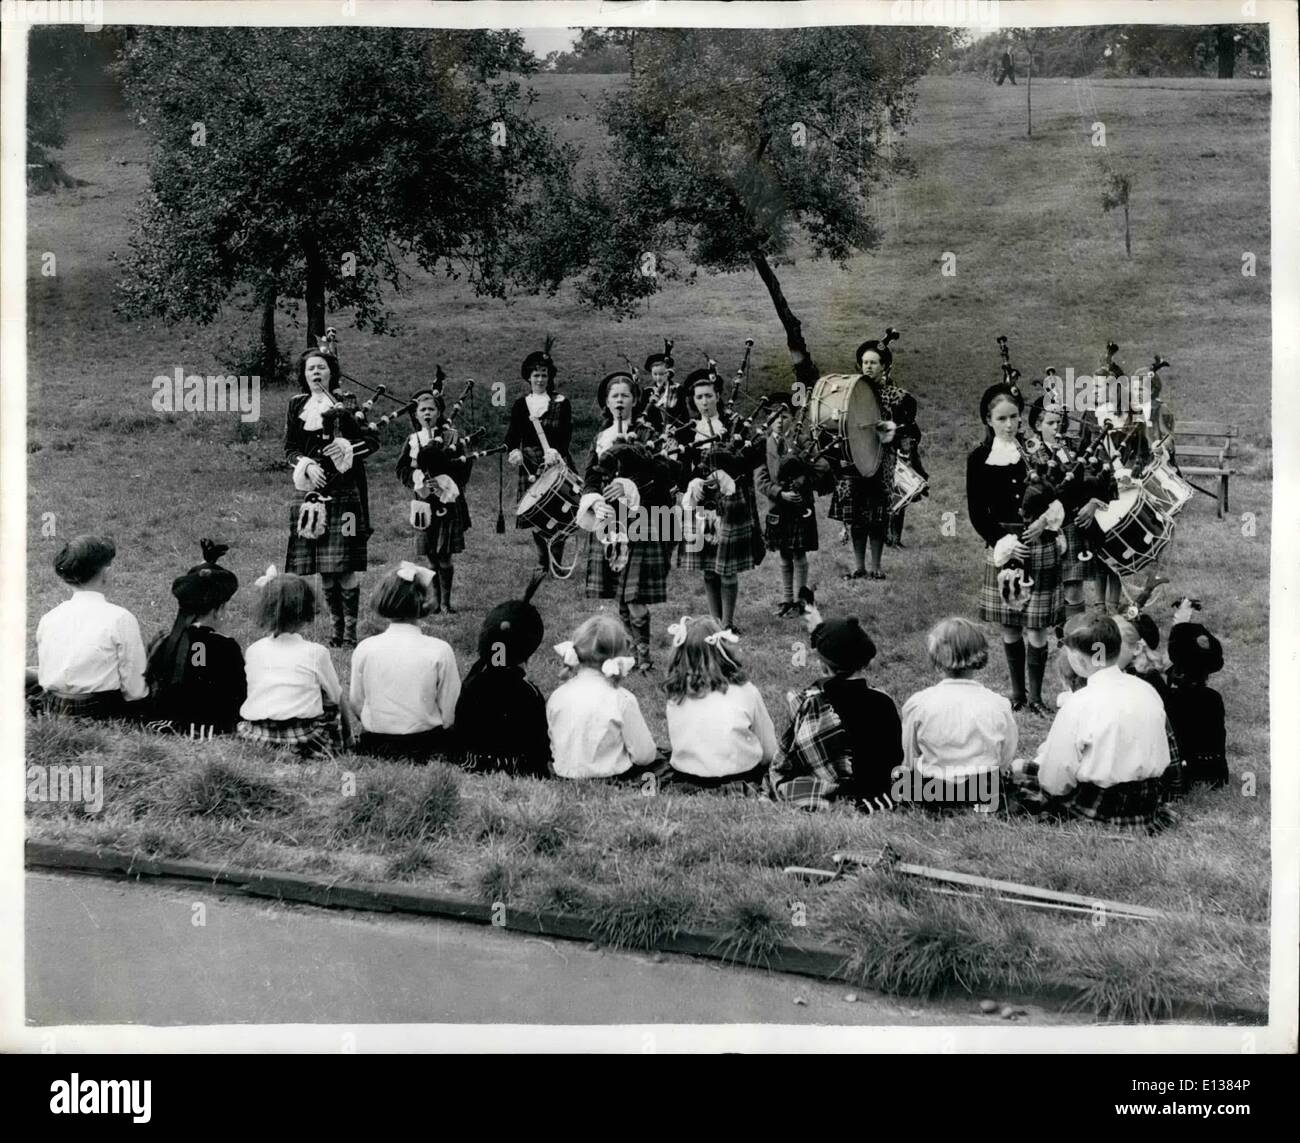 Feb. 29, 2012 - Girl's Pipe Band Formed In A London Suburb: The skir of the pipes is a now a familier sound at Plumstead, where London Scots who attend the Lochnagar School of Highland Danoing, are now forming their own Pipe Band under their teacher Mrs. Gladys Whittall, who has spent 400 of her own money on pipes. Already the band has had a successful B.B.C. audition, played at several charity performances etc. Practice take place at the Dancing School in the evening. The members ages very from 7 to 25, with 9 year old Donald as their mascot - Stock Image